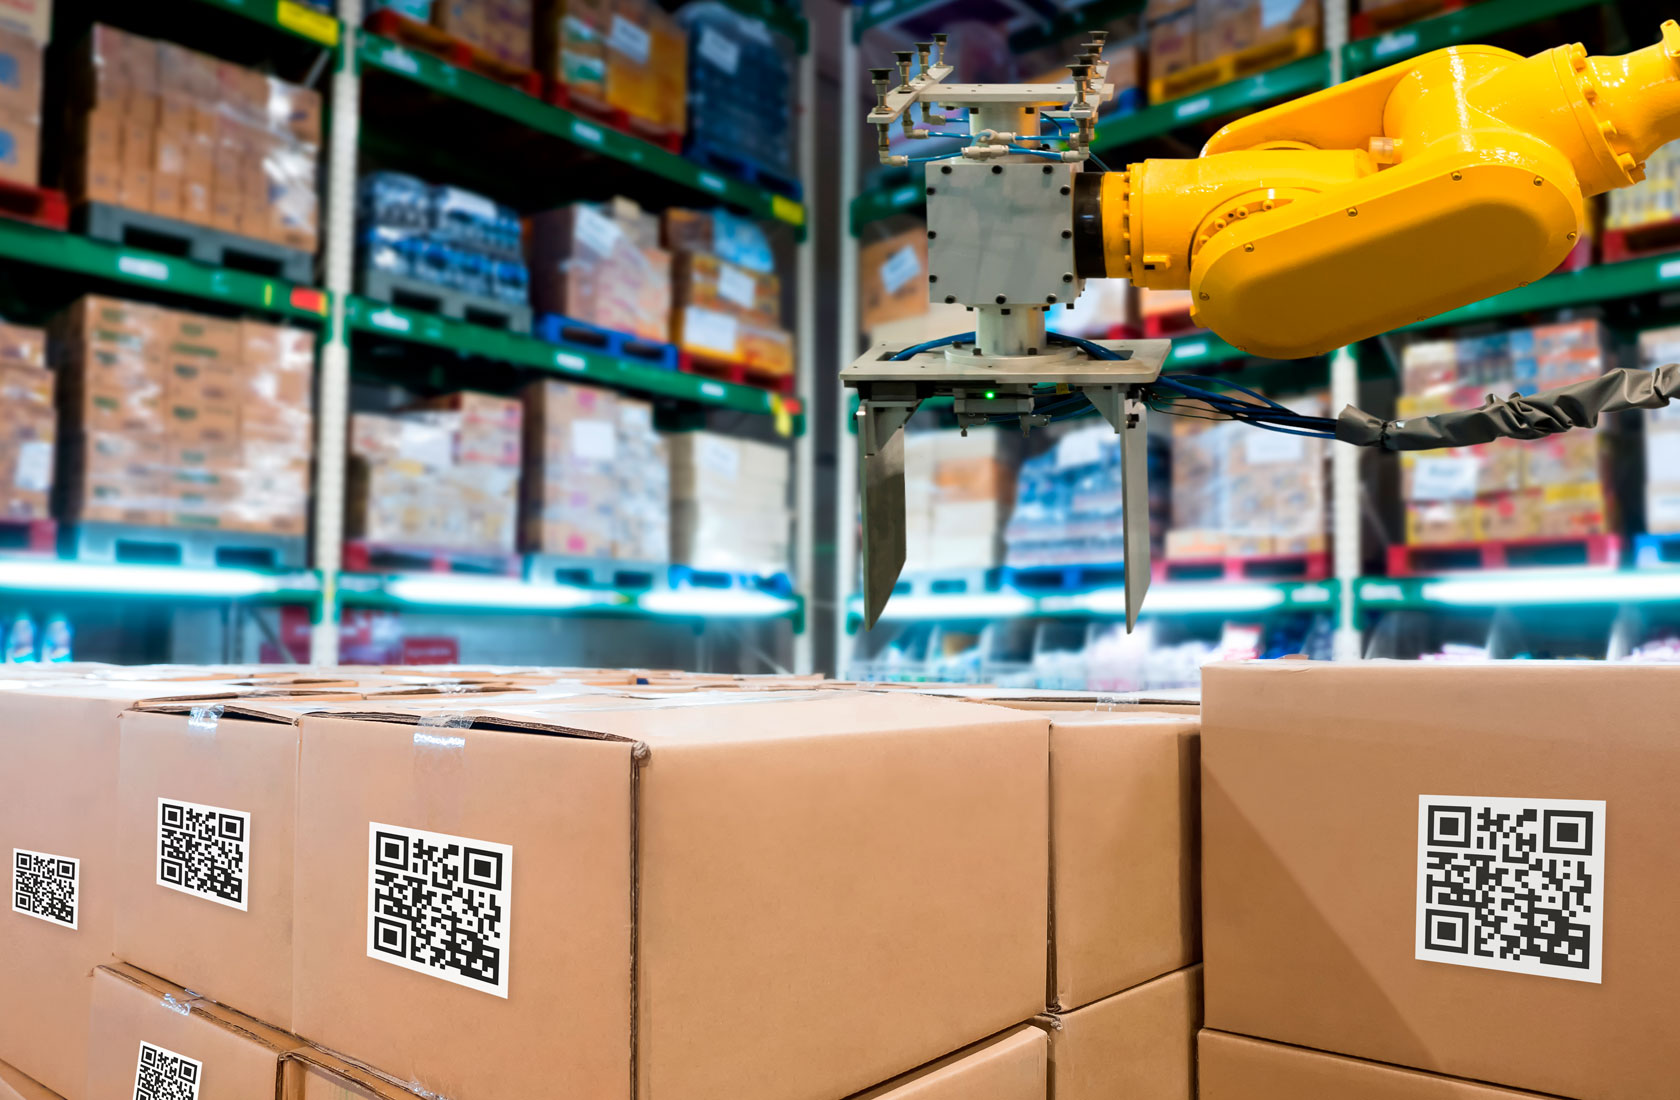 QR Labelled packages in warehouse with robotic arm